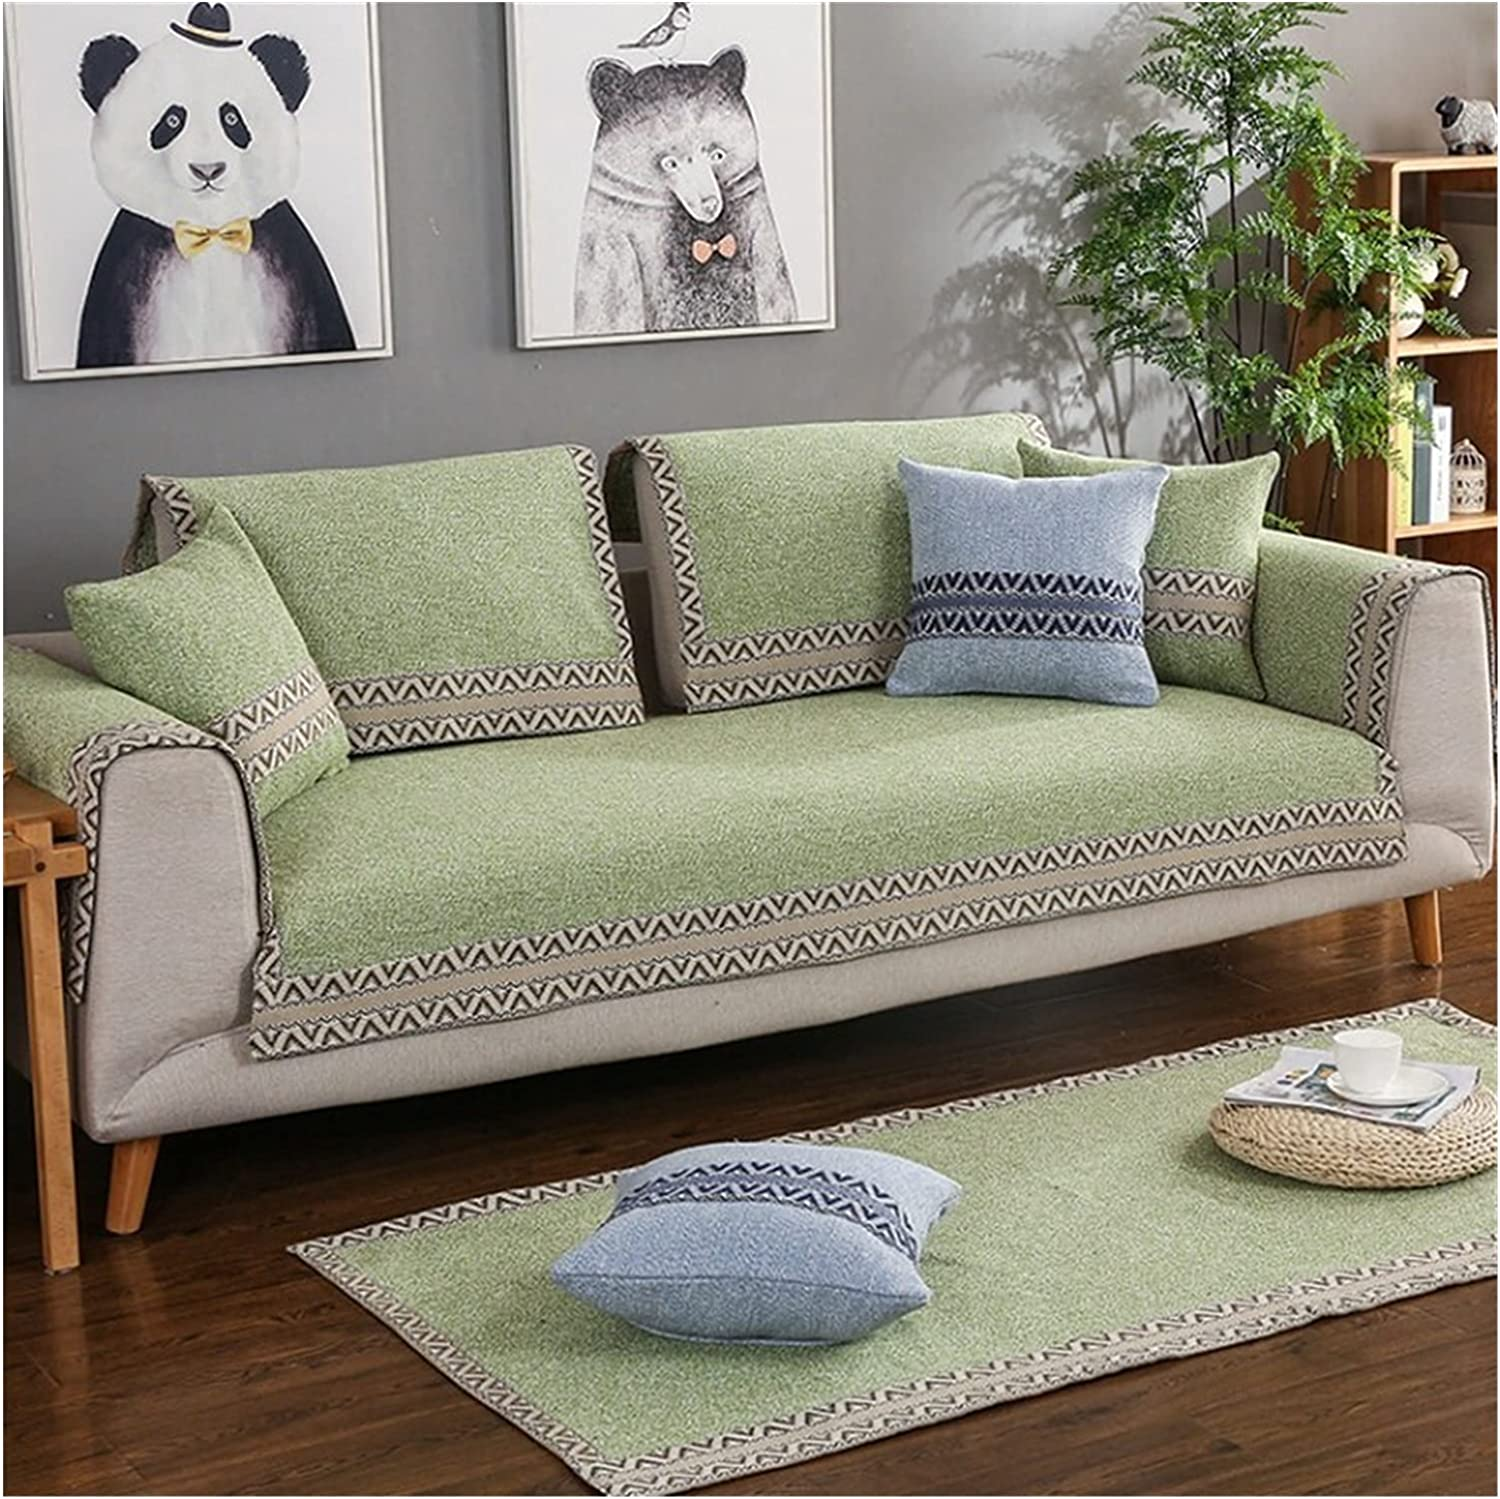 SEAL limited product XUELINGTANG 1 Piece Cotton Linen Sofa Modern Cover 67% OFF of fixed price Style Fabric